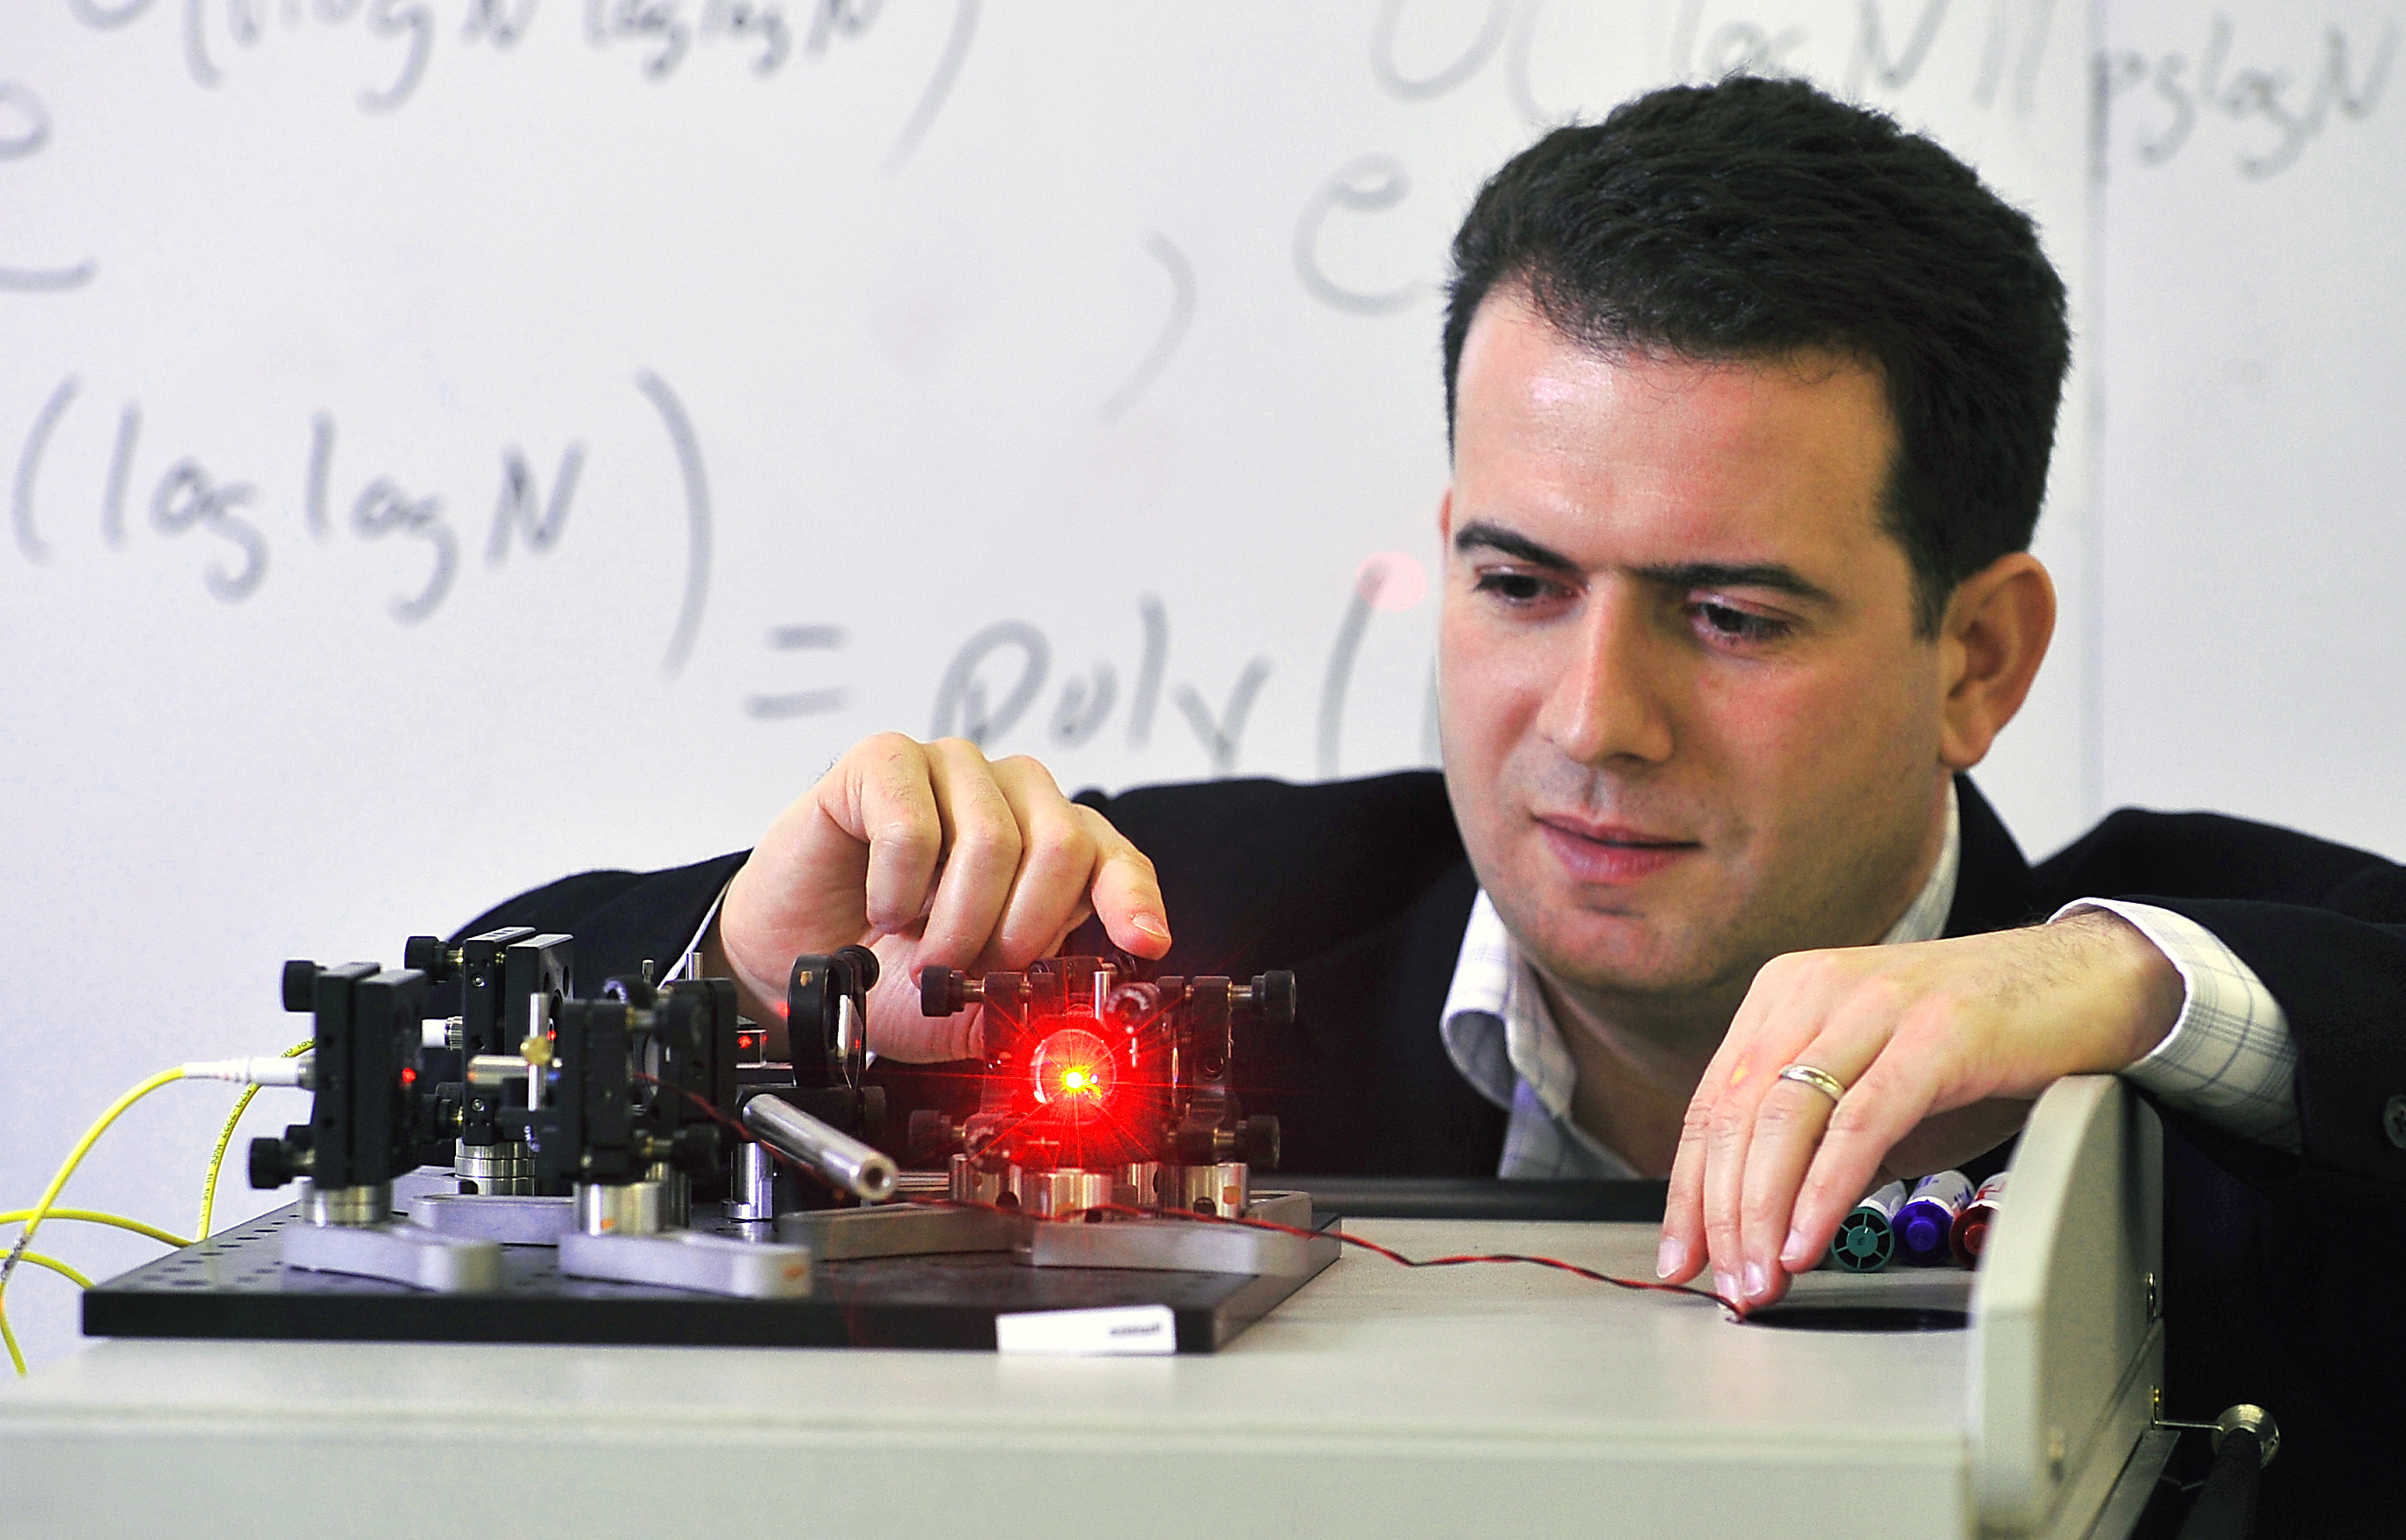 Mosca demonstrating the Optic experiment